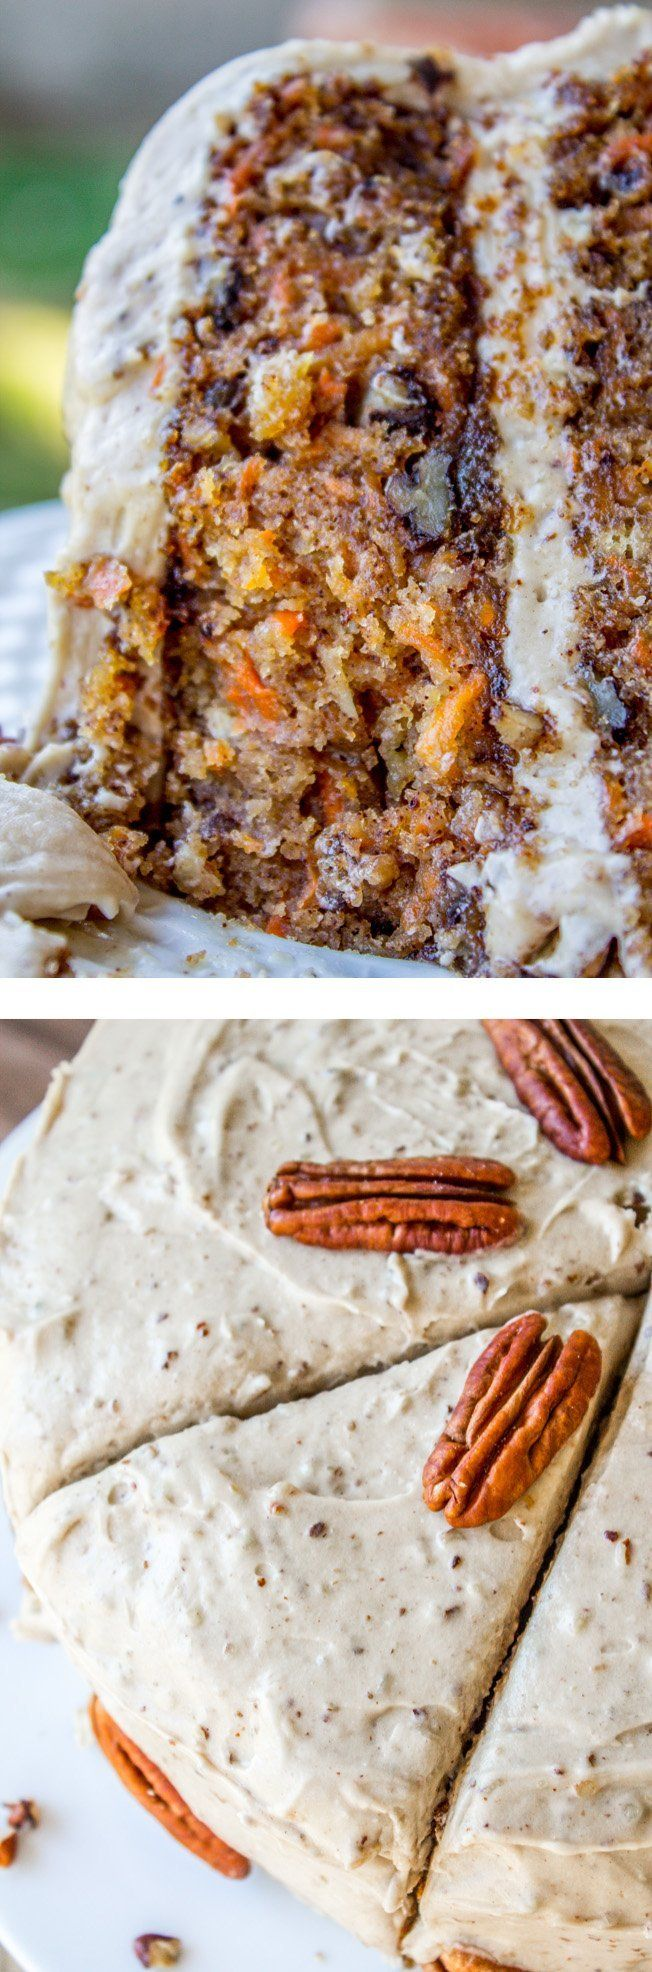 Carrot Cake with Cream Cheese Maple Pecan Frosting @FoodBlogs